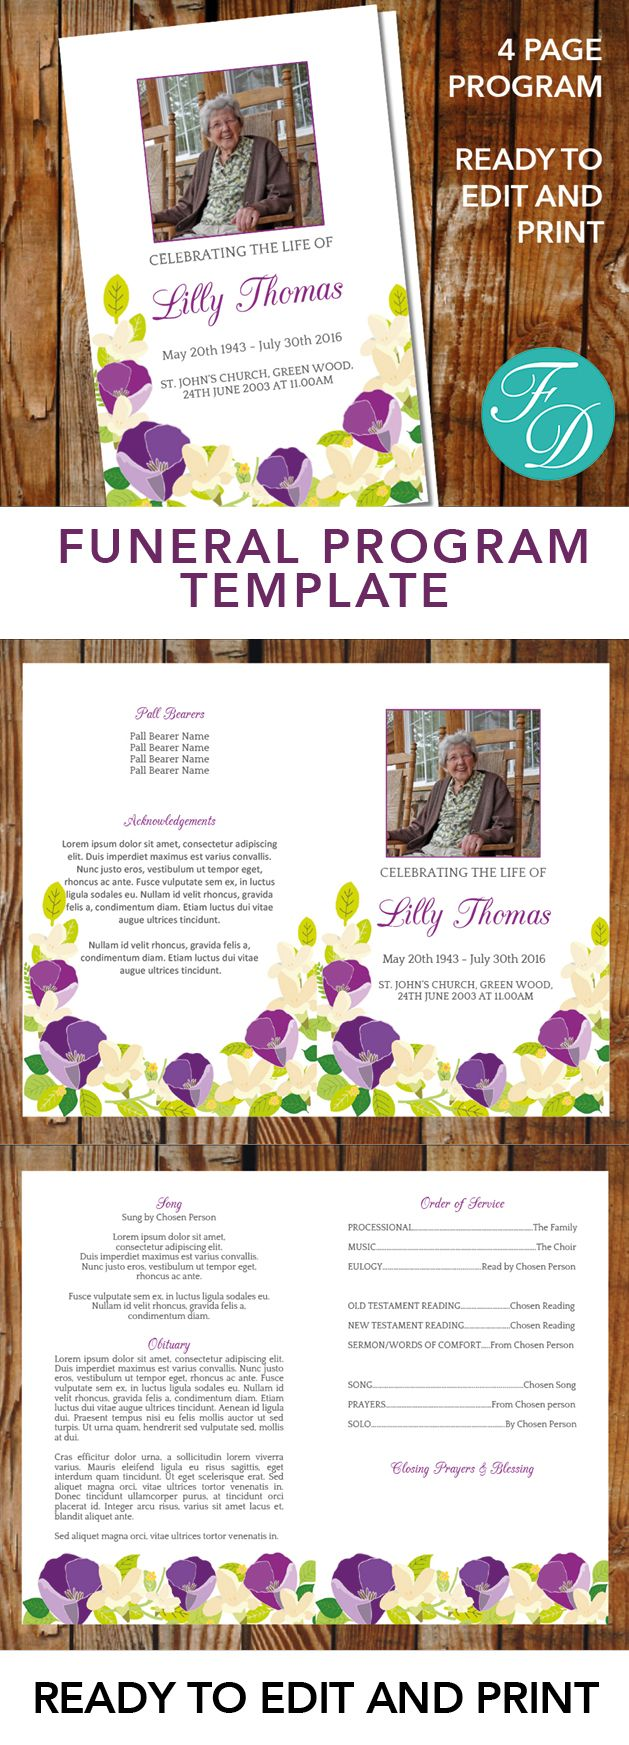 Purple Printable Funeral program ready to edit & print. Simply purchase your funeral templates, download, edit with Microsoft Word and print. #obituarytemplate #memorialprogram #funeralprograms #funeraltemplate #printableprogram #celebrationoflife #funeralprogamtemplates